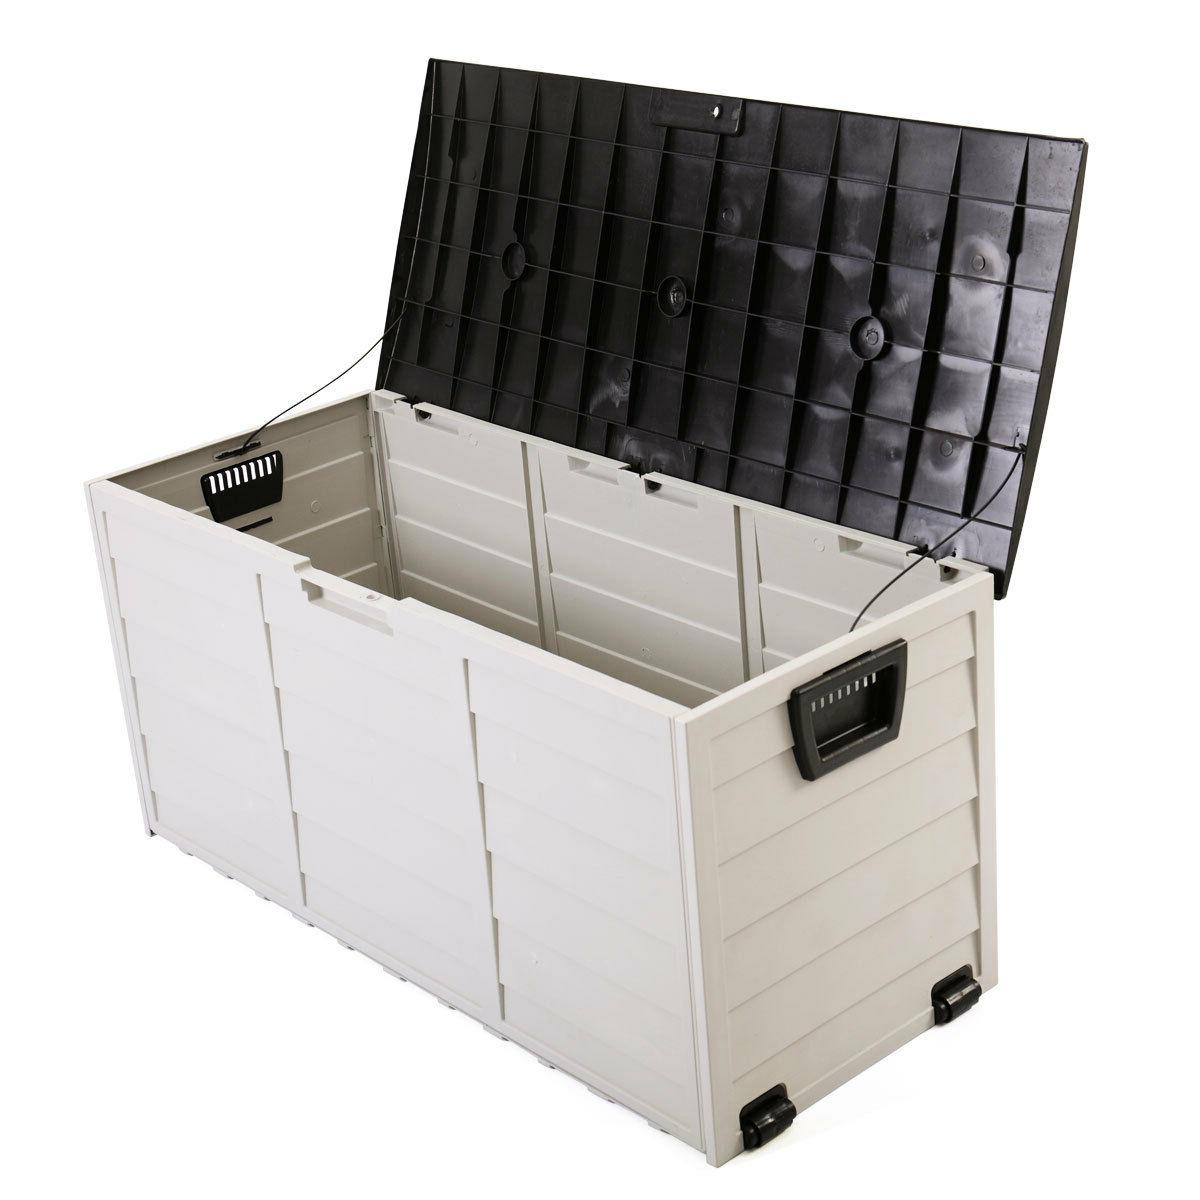 Tool Outdoor Shed Storage Patio Backyard Deck Cabinet